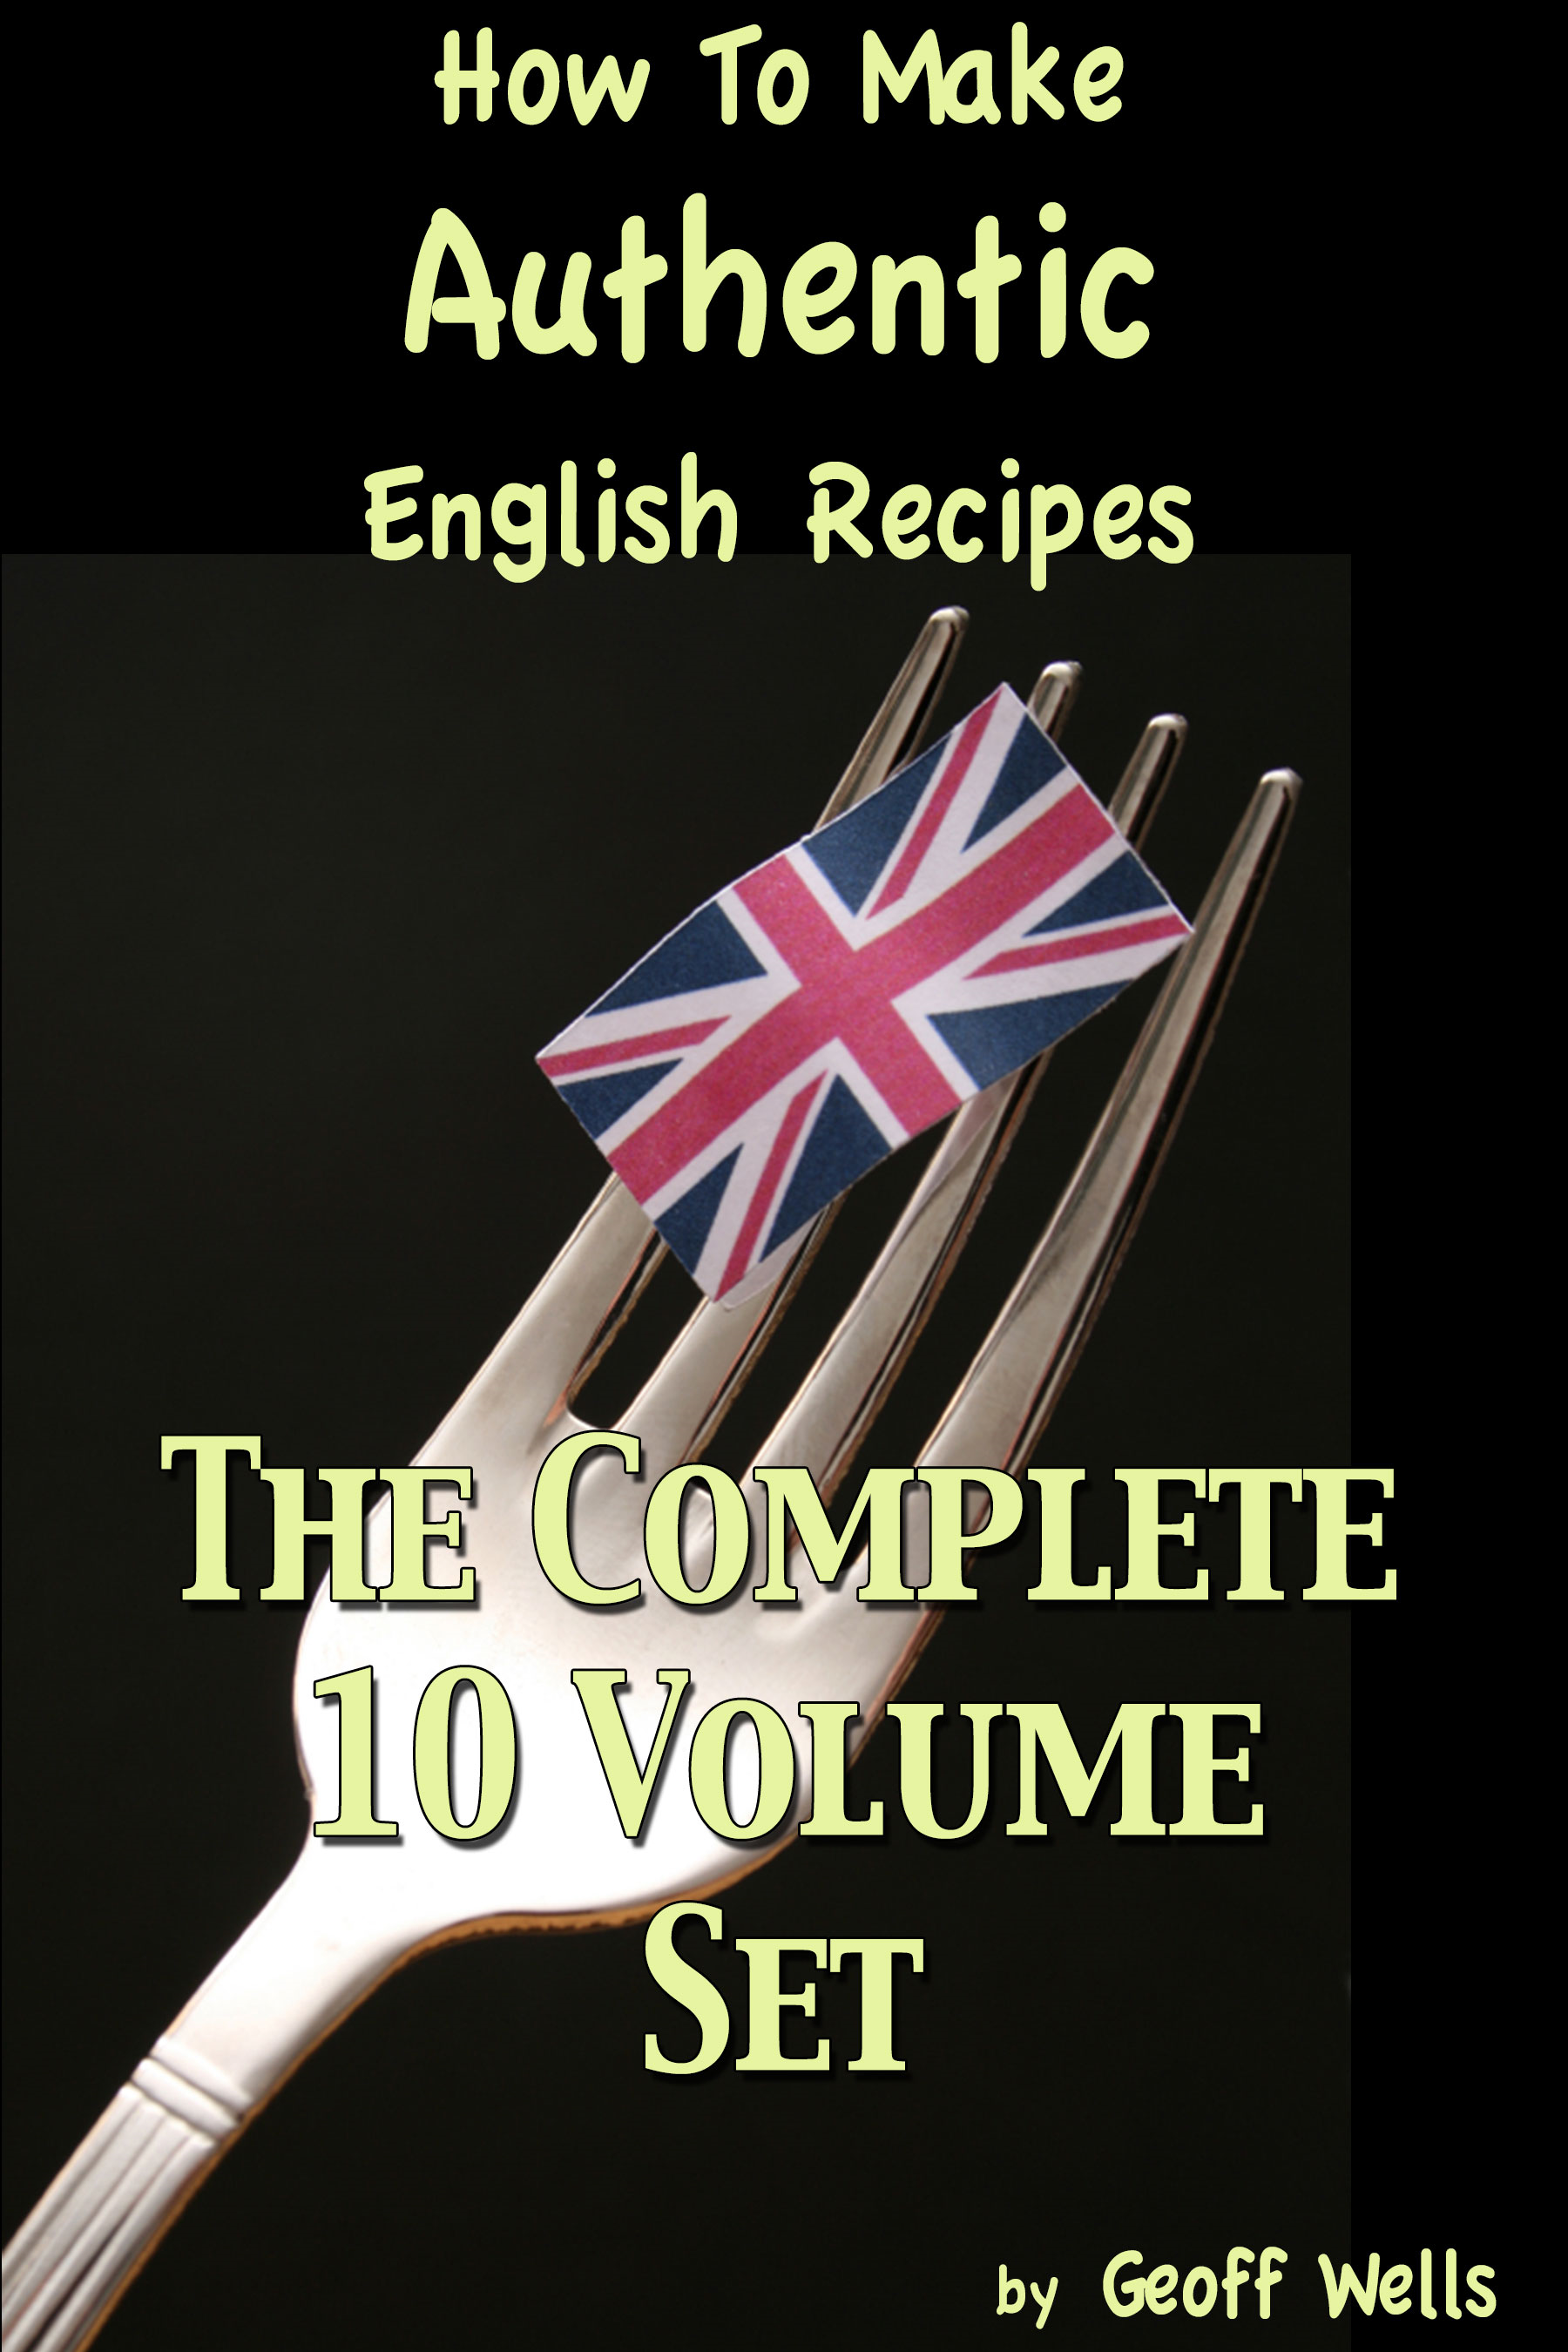 How To Make Authentic English Recipes By: Geoff Wells